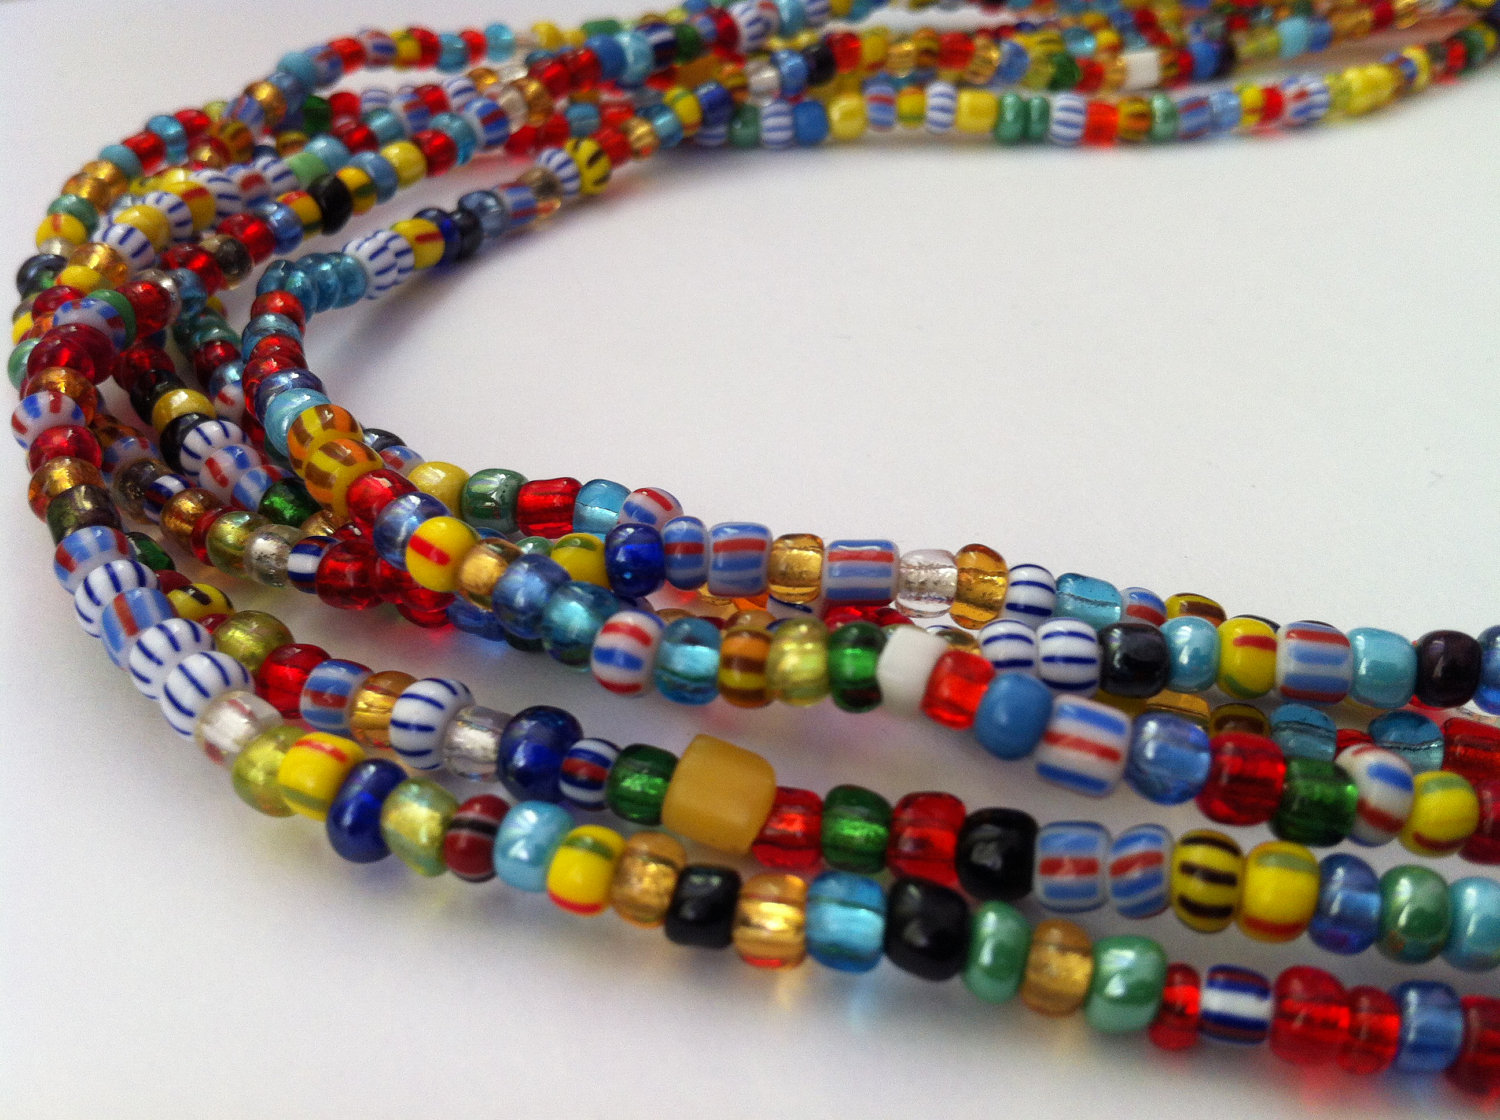 Magic uses of waist beads that will blow your mind